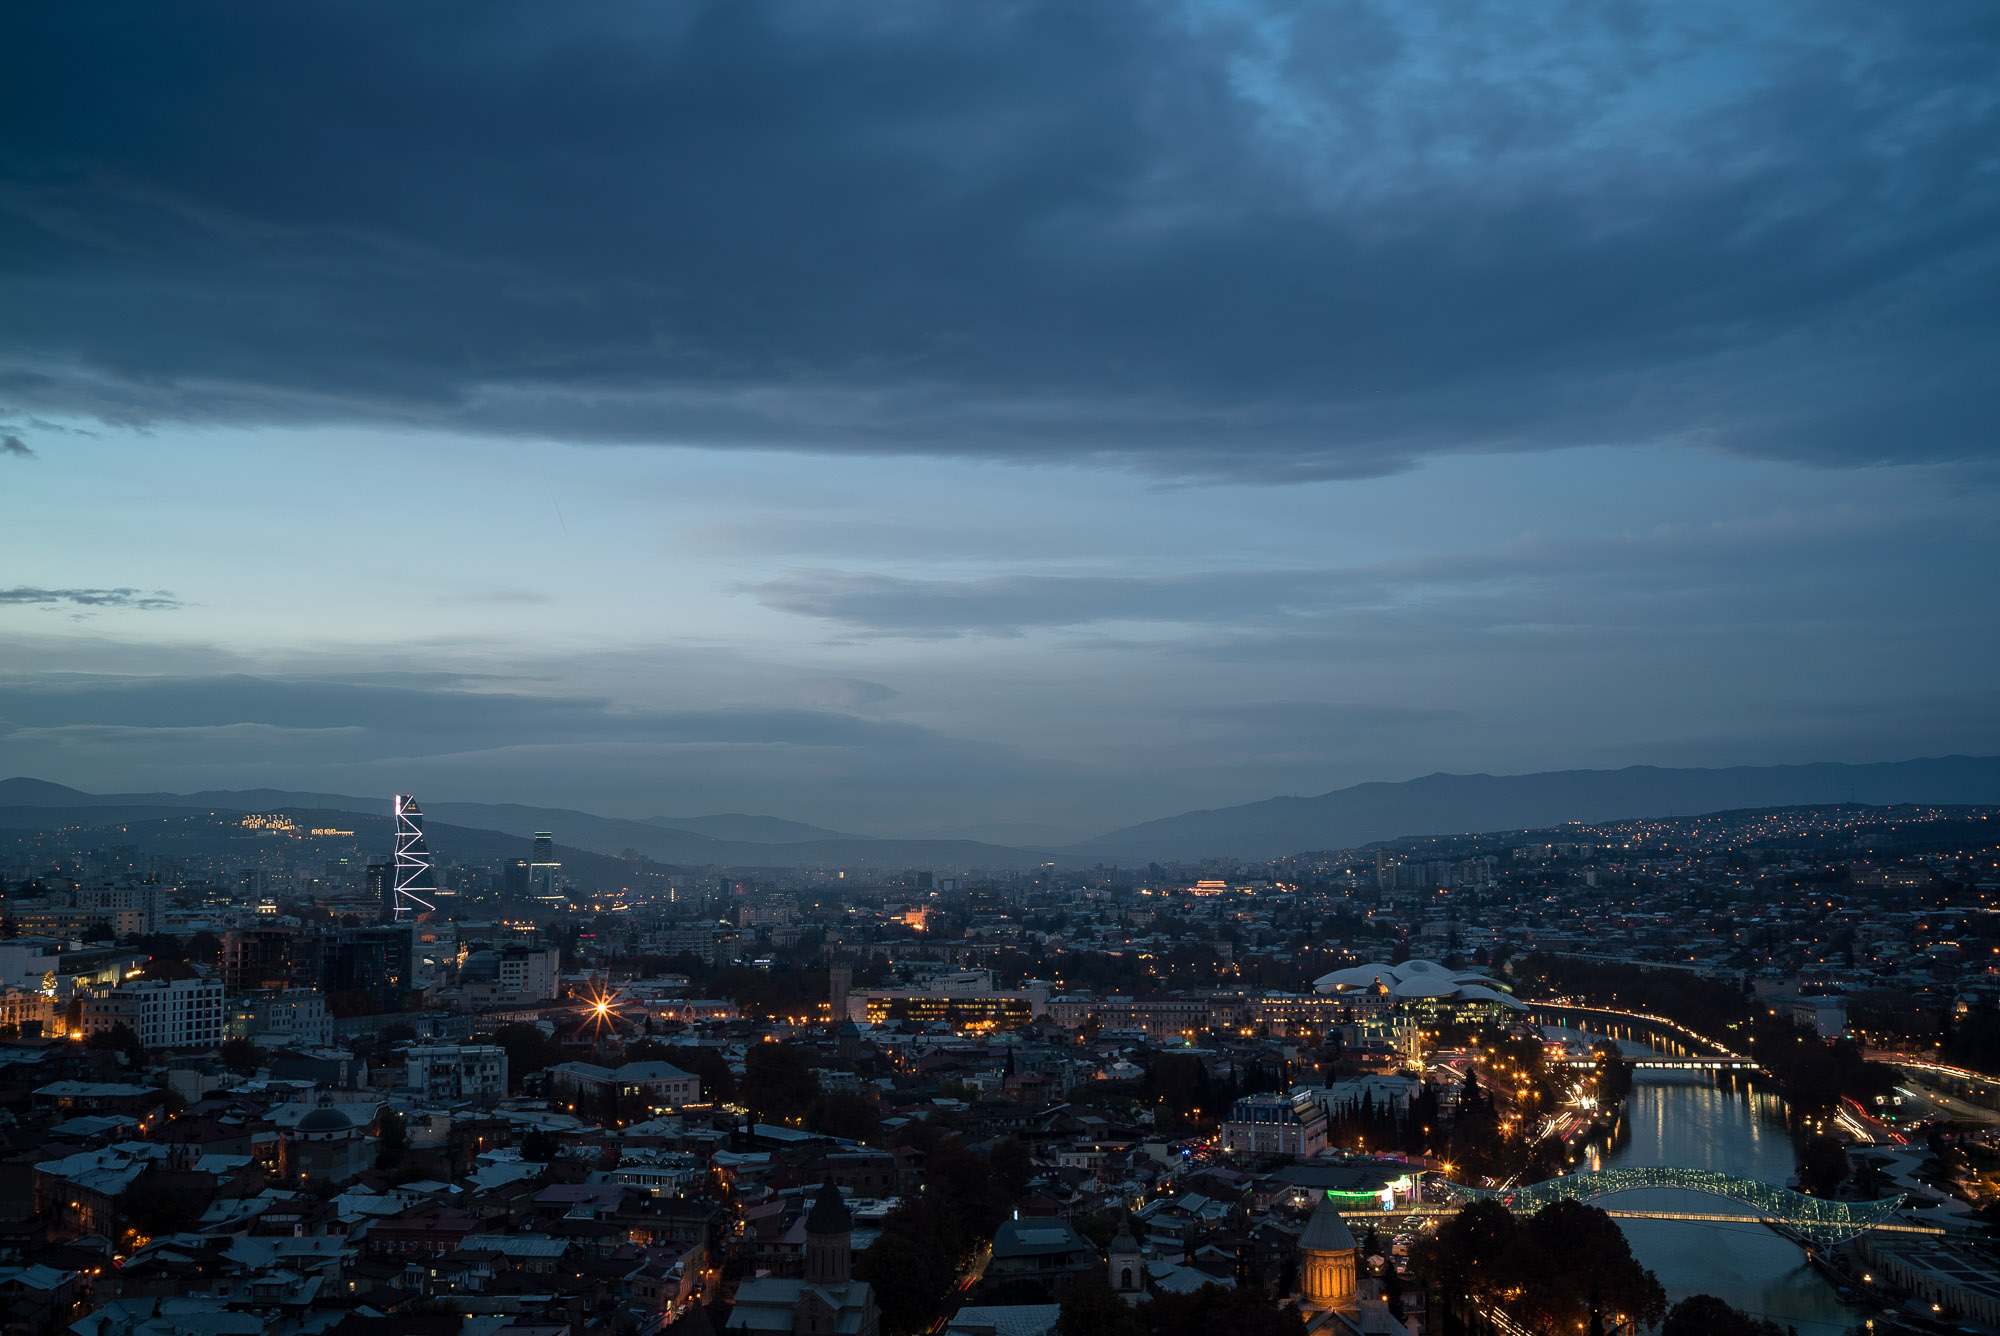 nightfall over Tbilisi